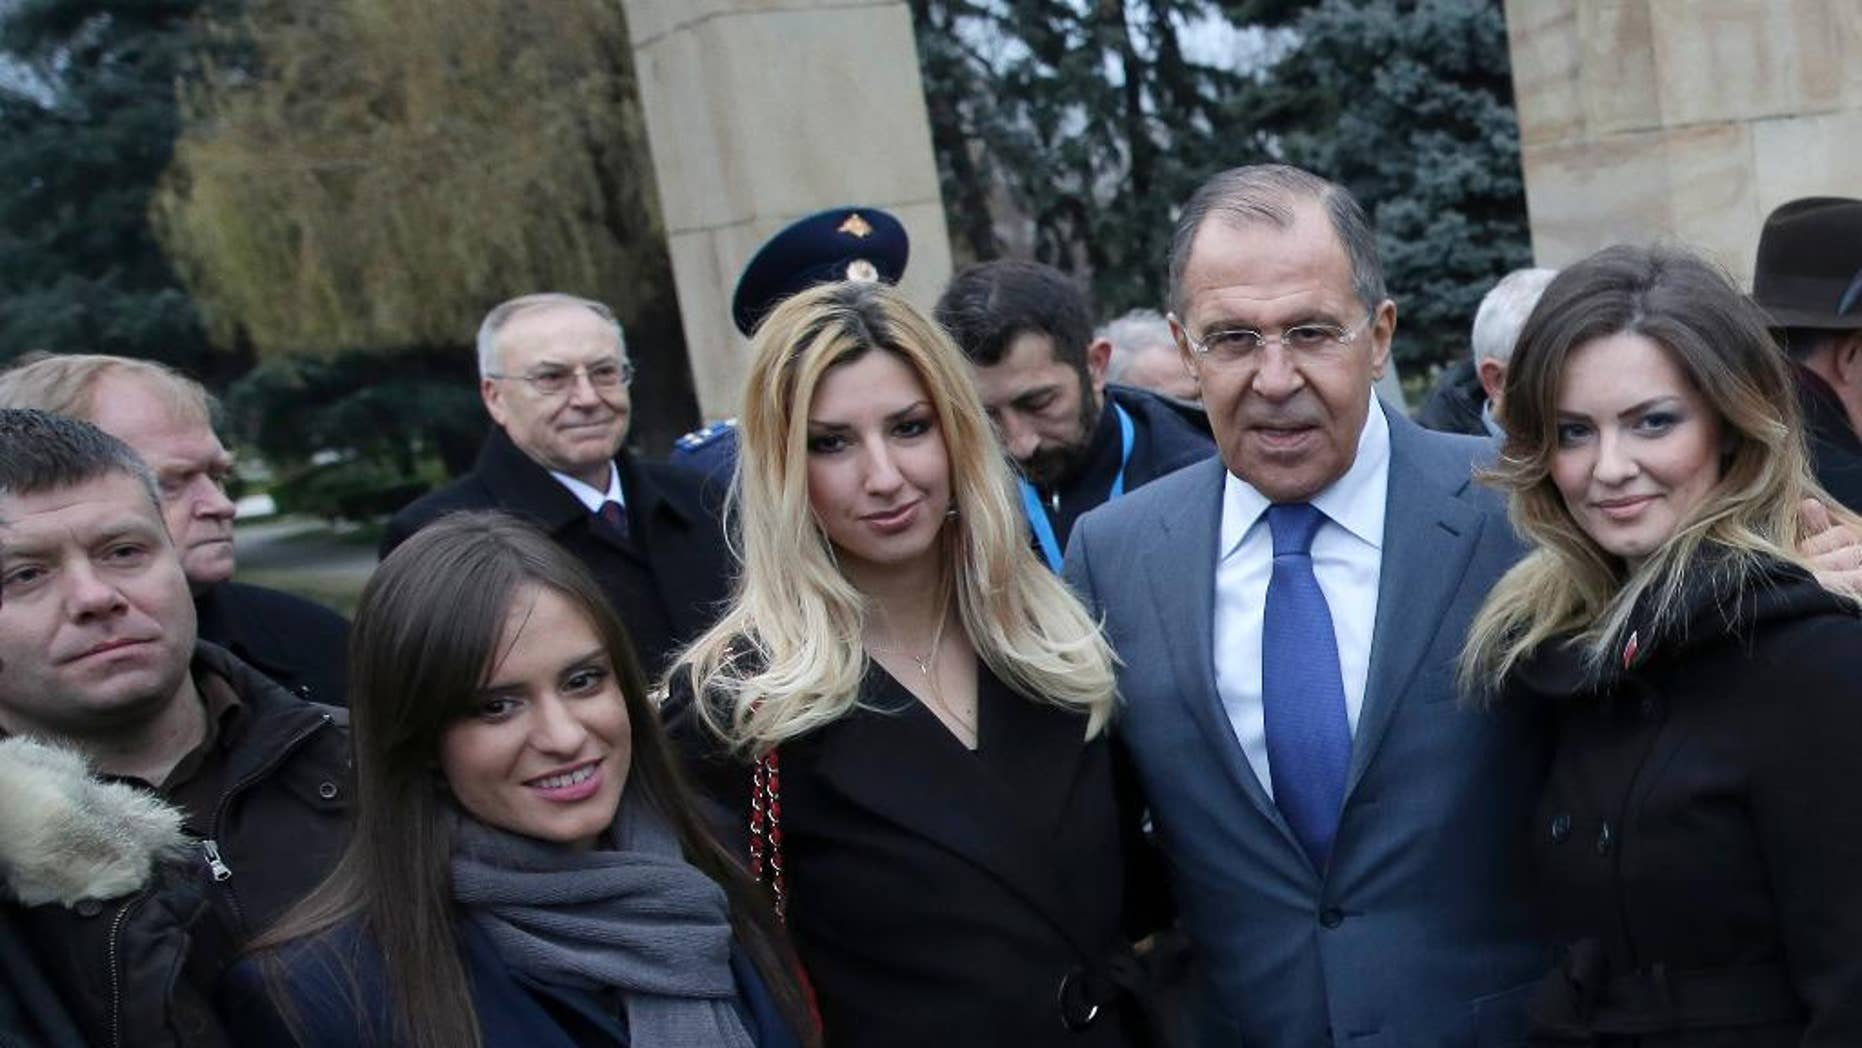 In this photo taken Monday, Dec. 12, 2016, Russian Foreign Minister Sergey Lavrov, second from right, poses for photos with members of a far-right pro-Russian group with Nemanja Ristic at left, in Belgrade, Serbia. Montenegro says it's seeking the extradition of a man photographed standing near Russian Foreign Minister Sergey Lavrov this week in Serbia on suspicion he took part in an alleged coup attempt. (AP Photo)